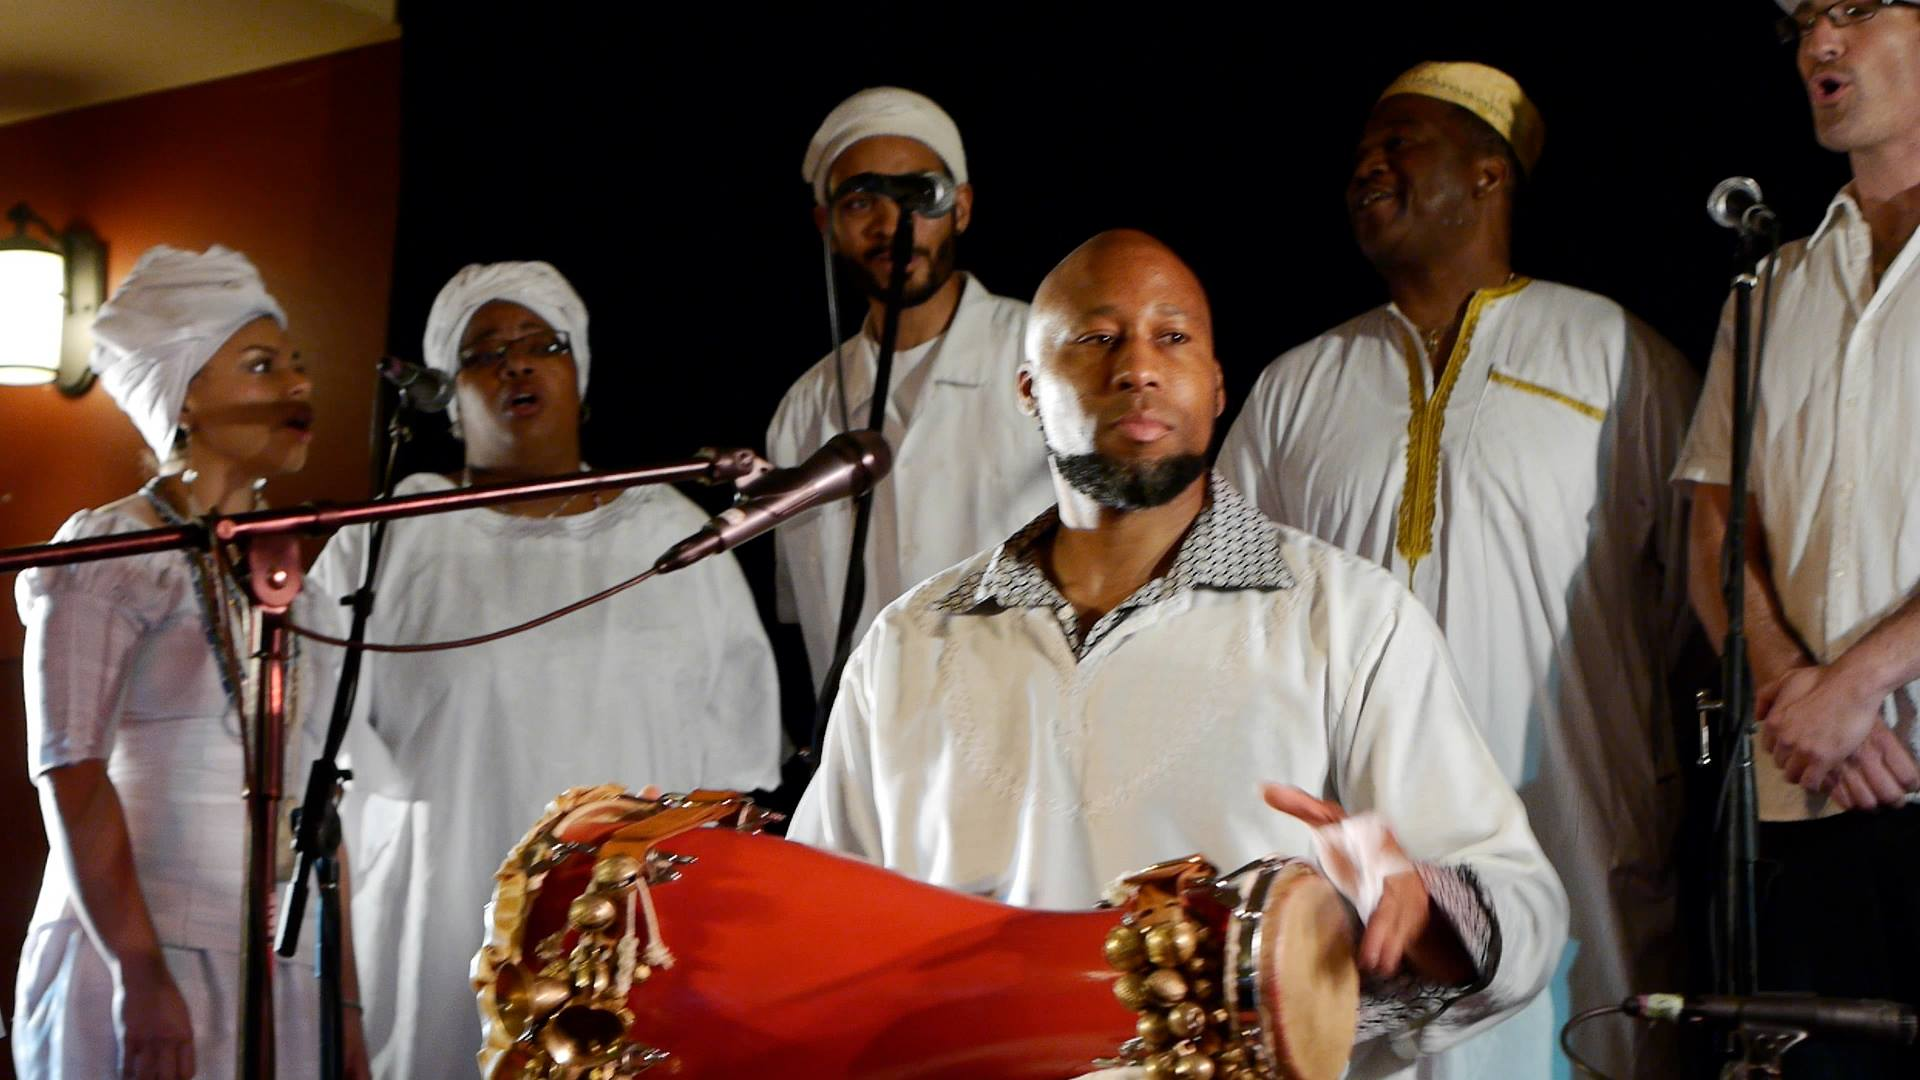 Omo Alagba CD release party at Fremont Abbey